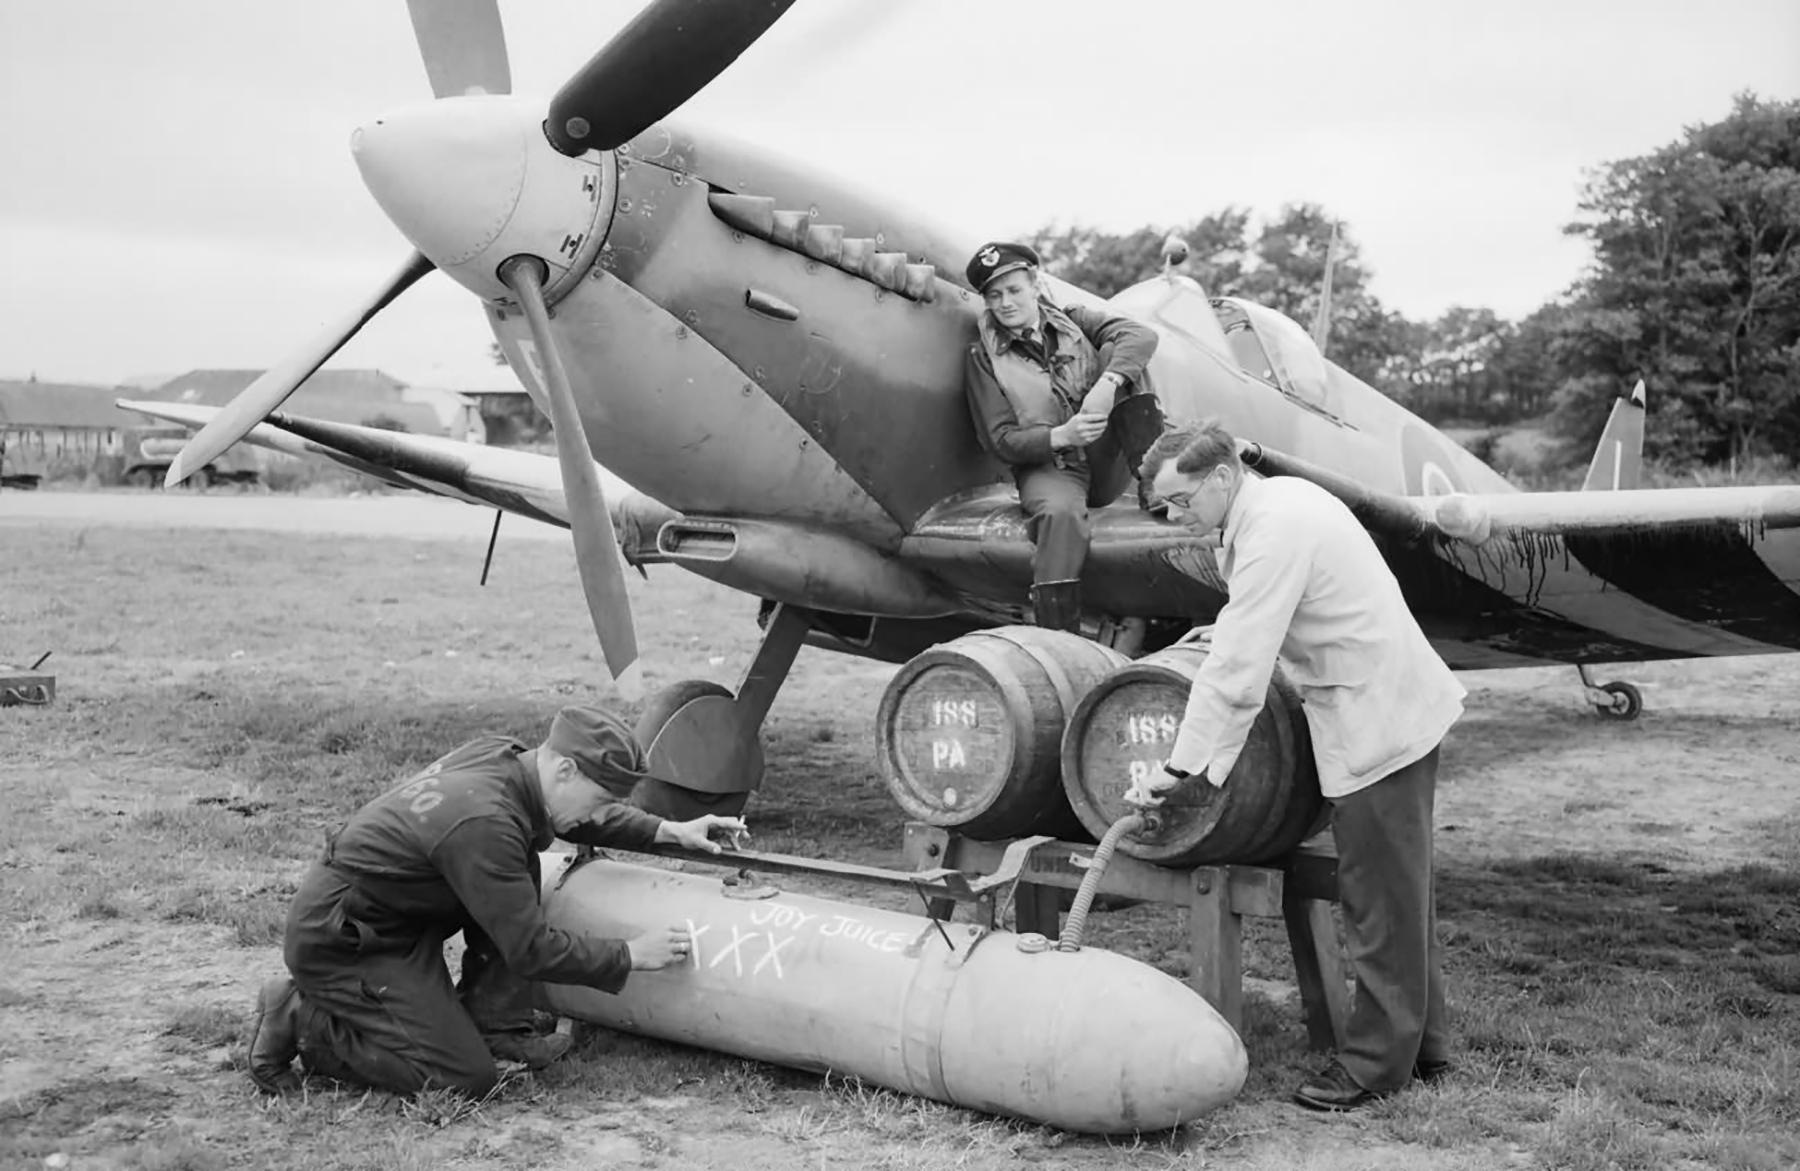 Spitfire external fuel tank filled with beer for Allied forces in Normandy 1944 01